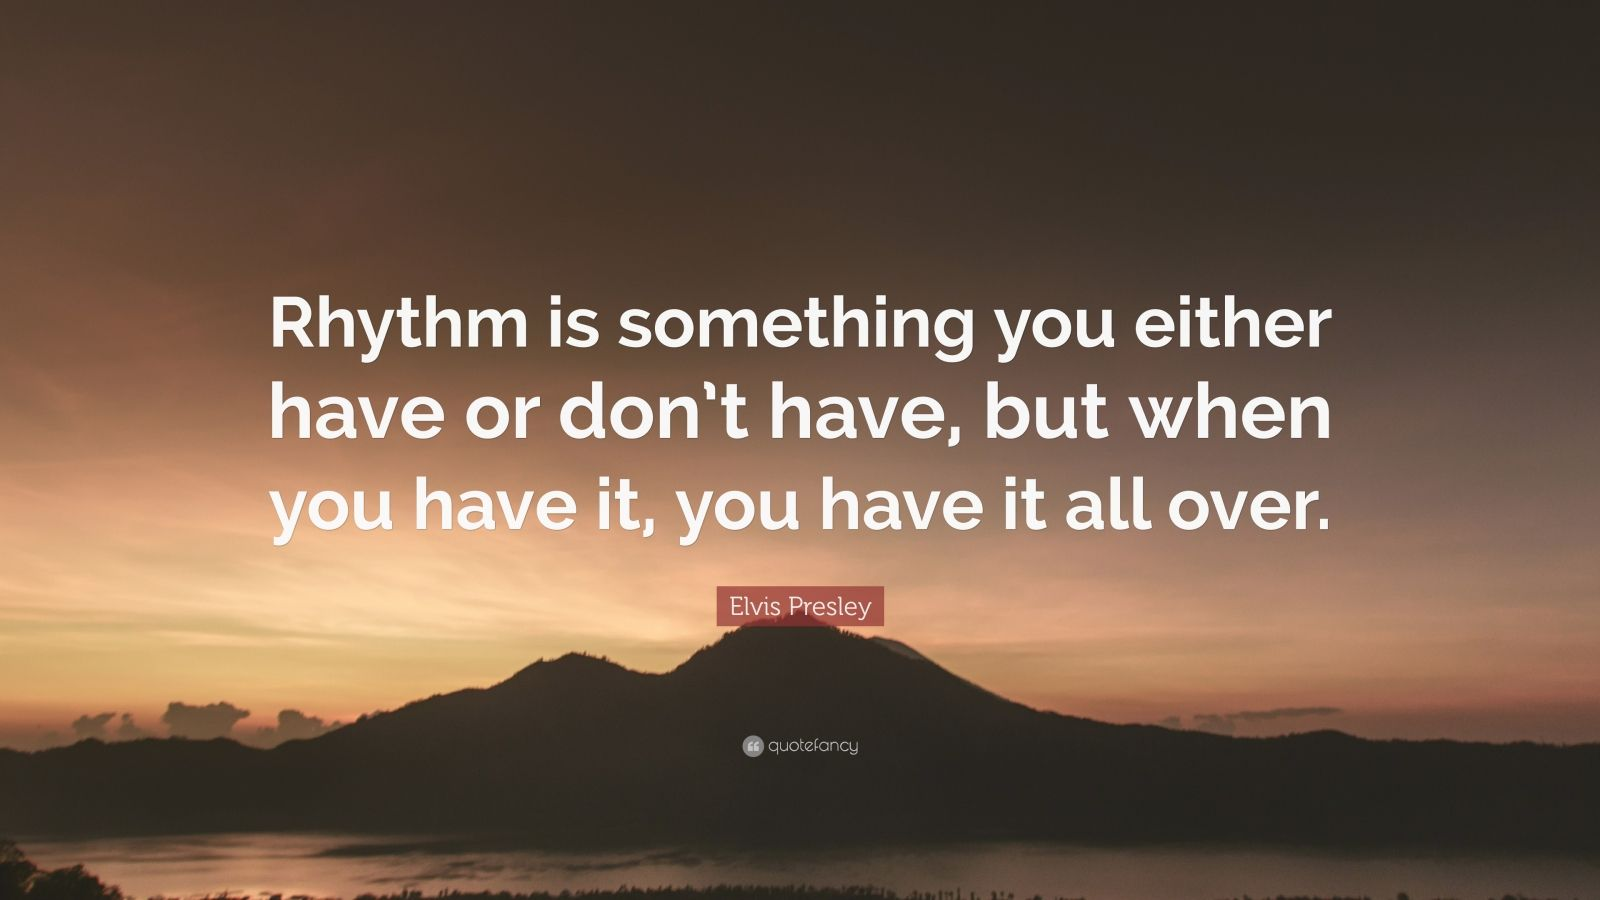 """Elvis Presley Quote: """"Rhythm is something you either have or don't have, but when you have it, you have it all over."""""""